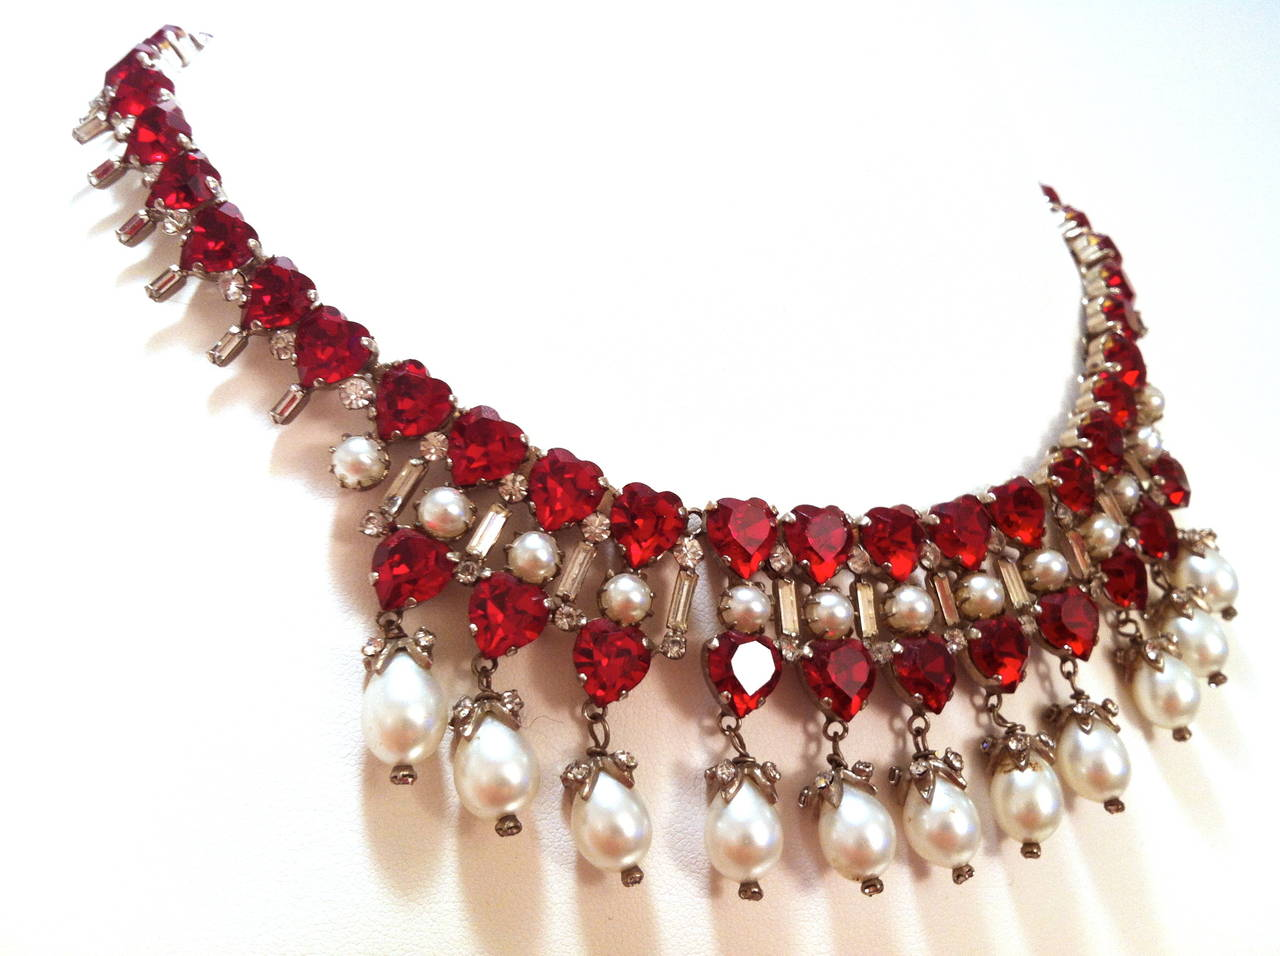 1950s Roger Jean Pierre for Christian Dior Necklace 4